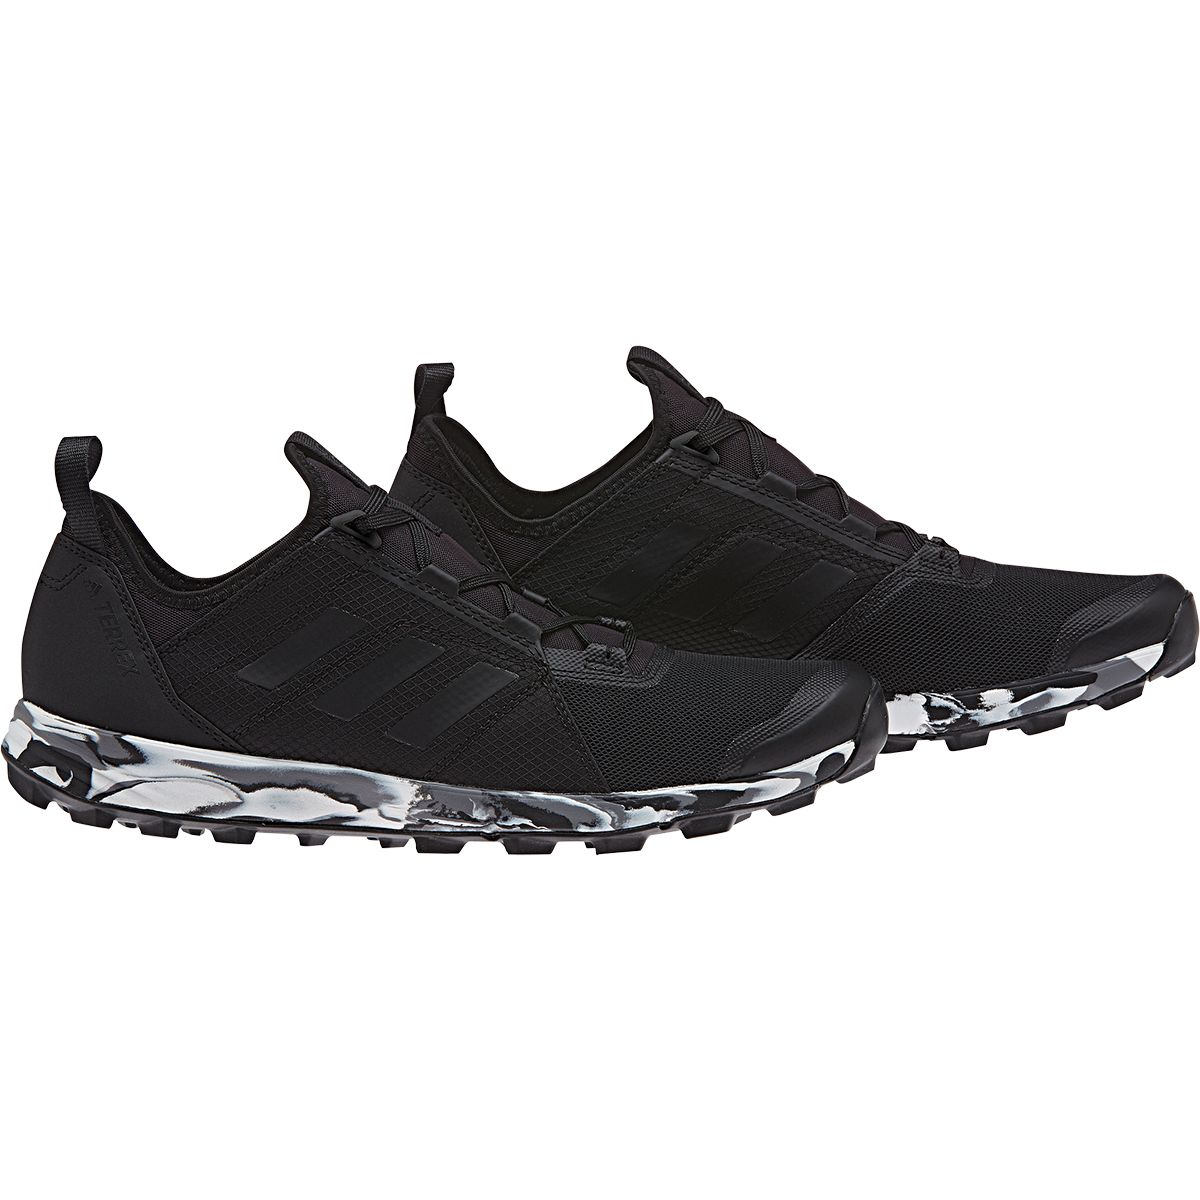 TERREX AGRAVIC SPEED Trail Running Shoes